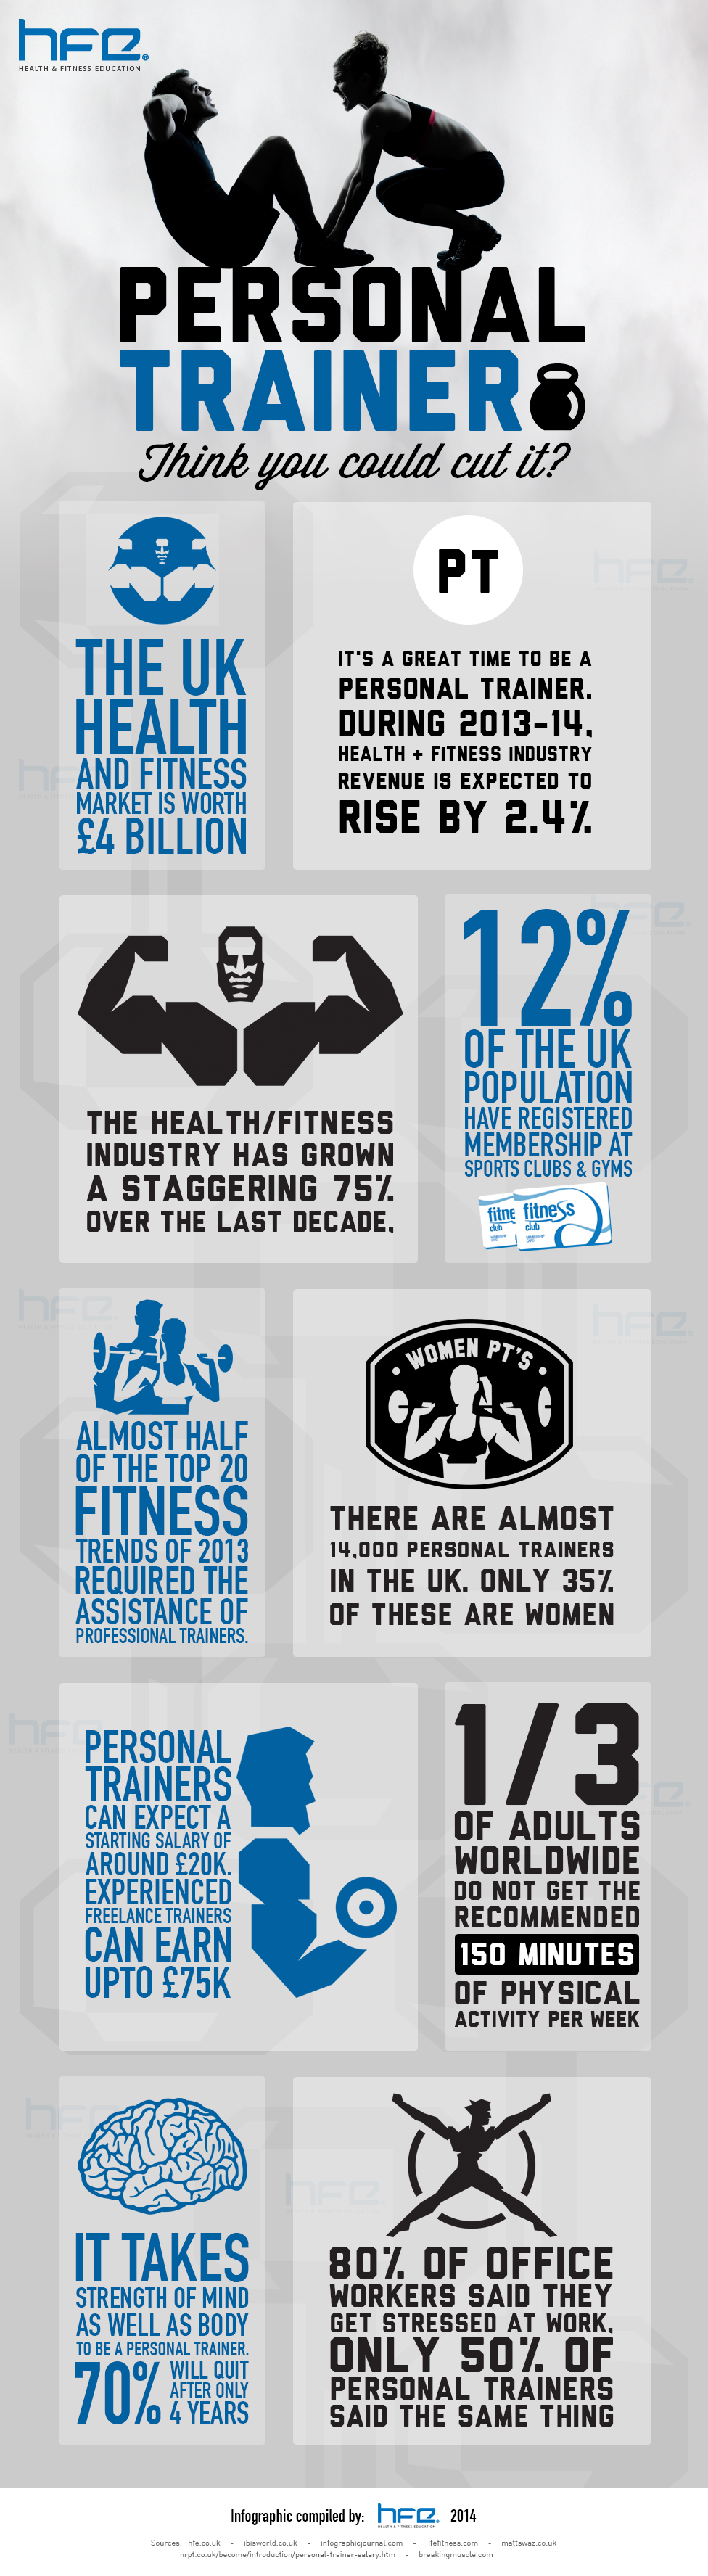 Personal training Infographic